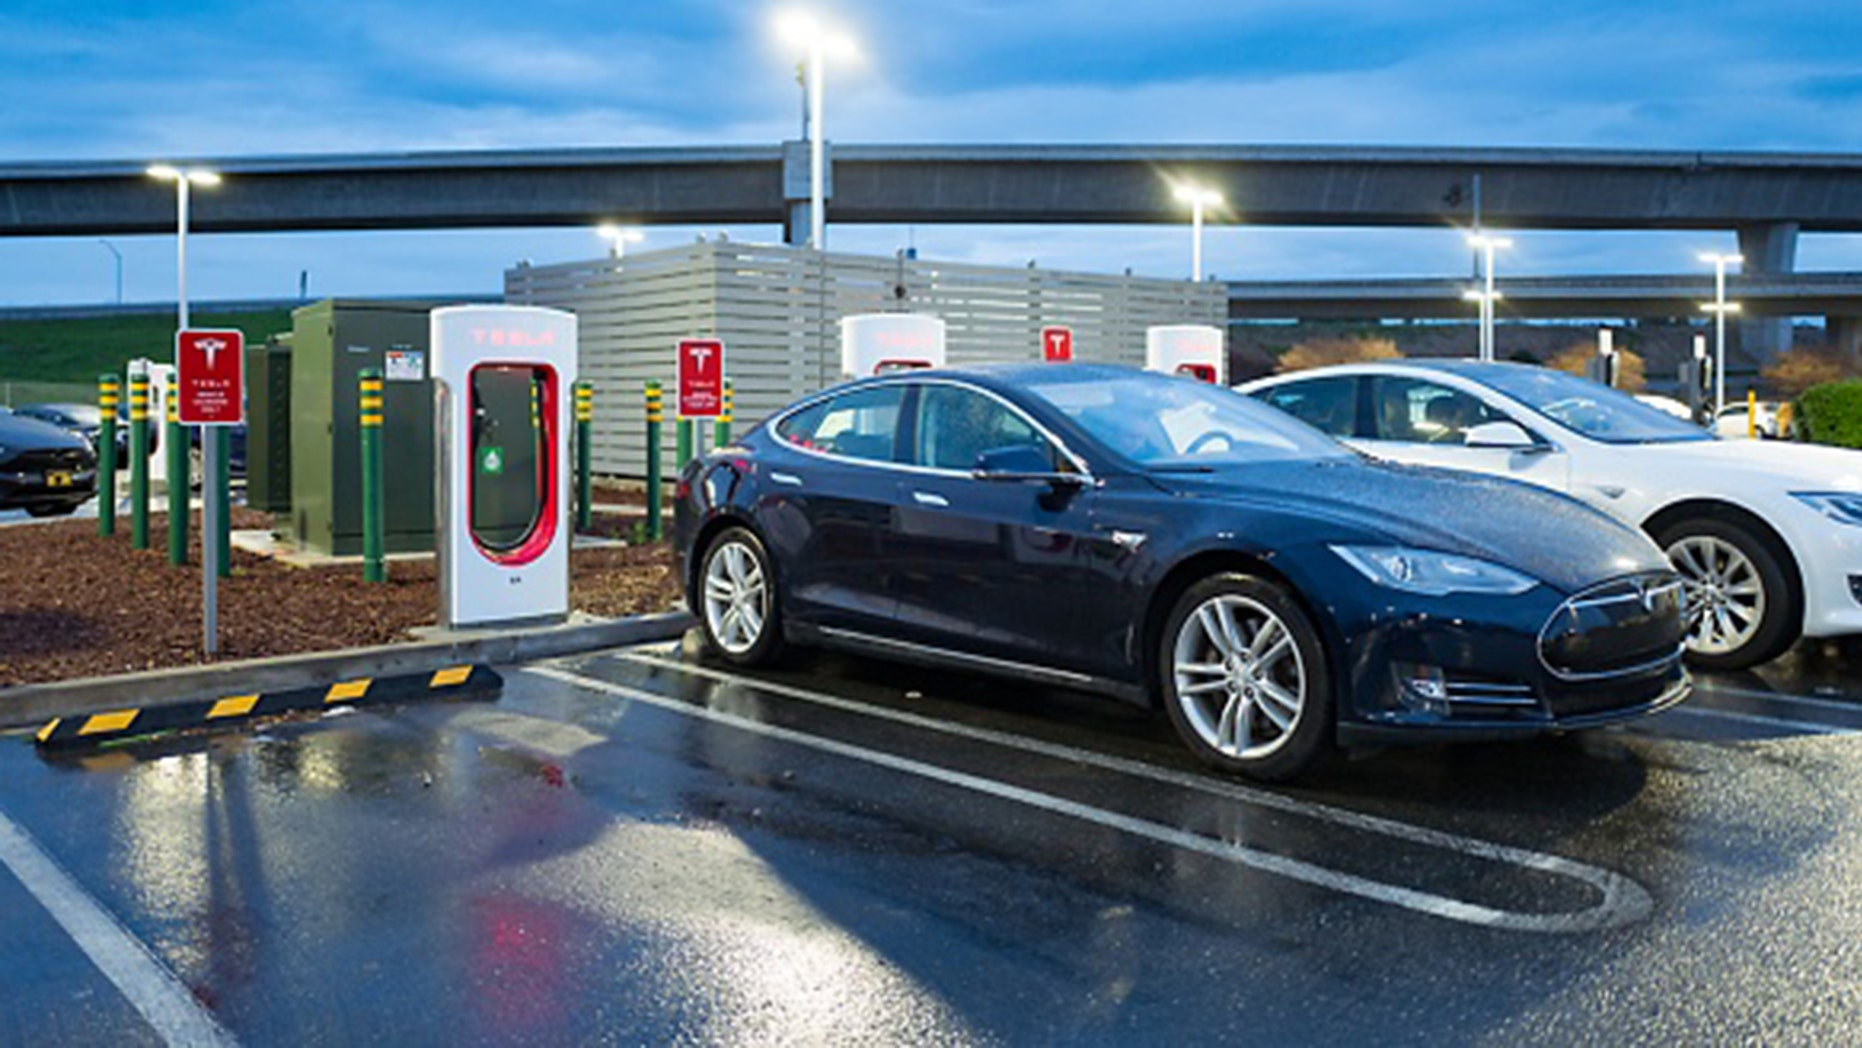 Tesla Is Increasing The Range Of Some Cars In The Path Of Hurricane